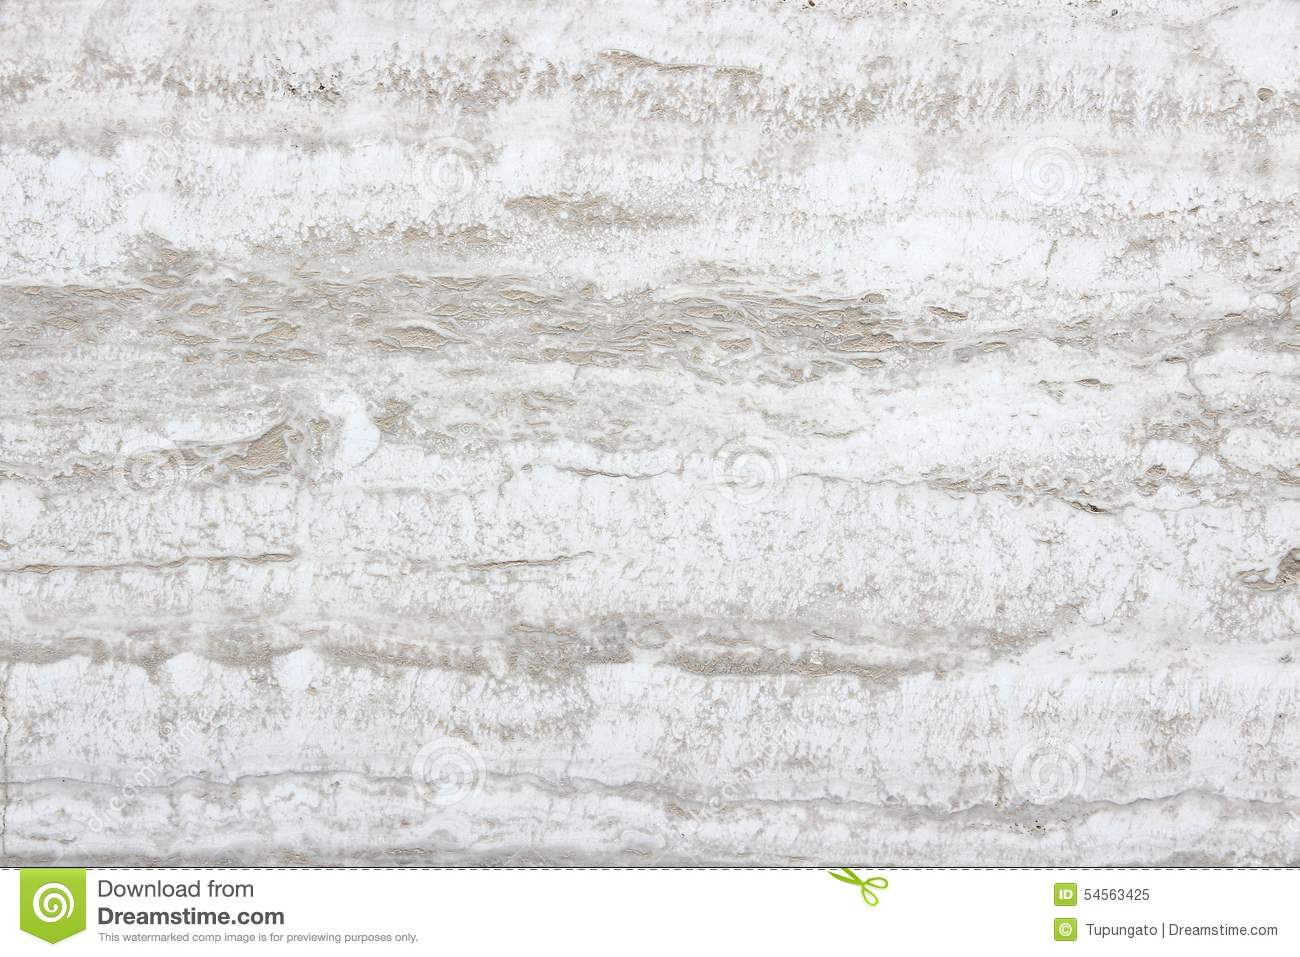 Limestone texture - white stone background abstract. White surface.